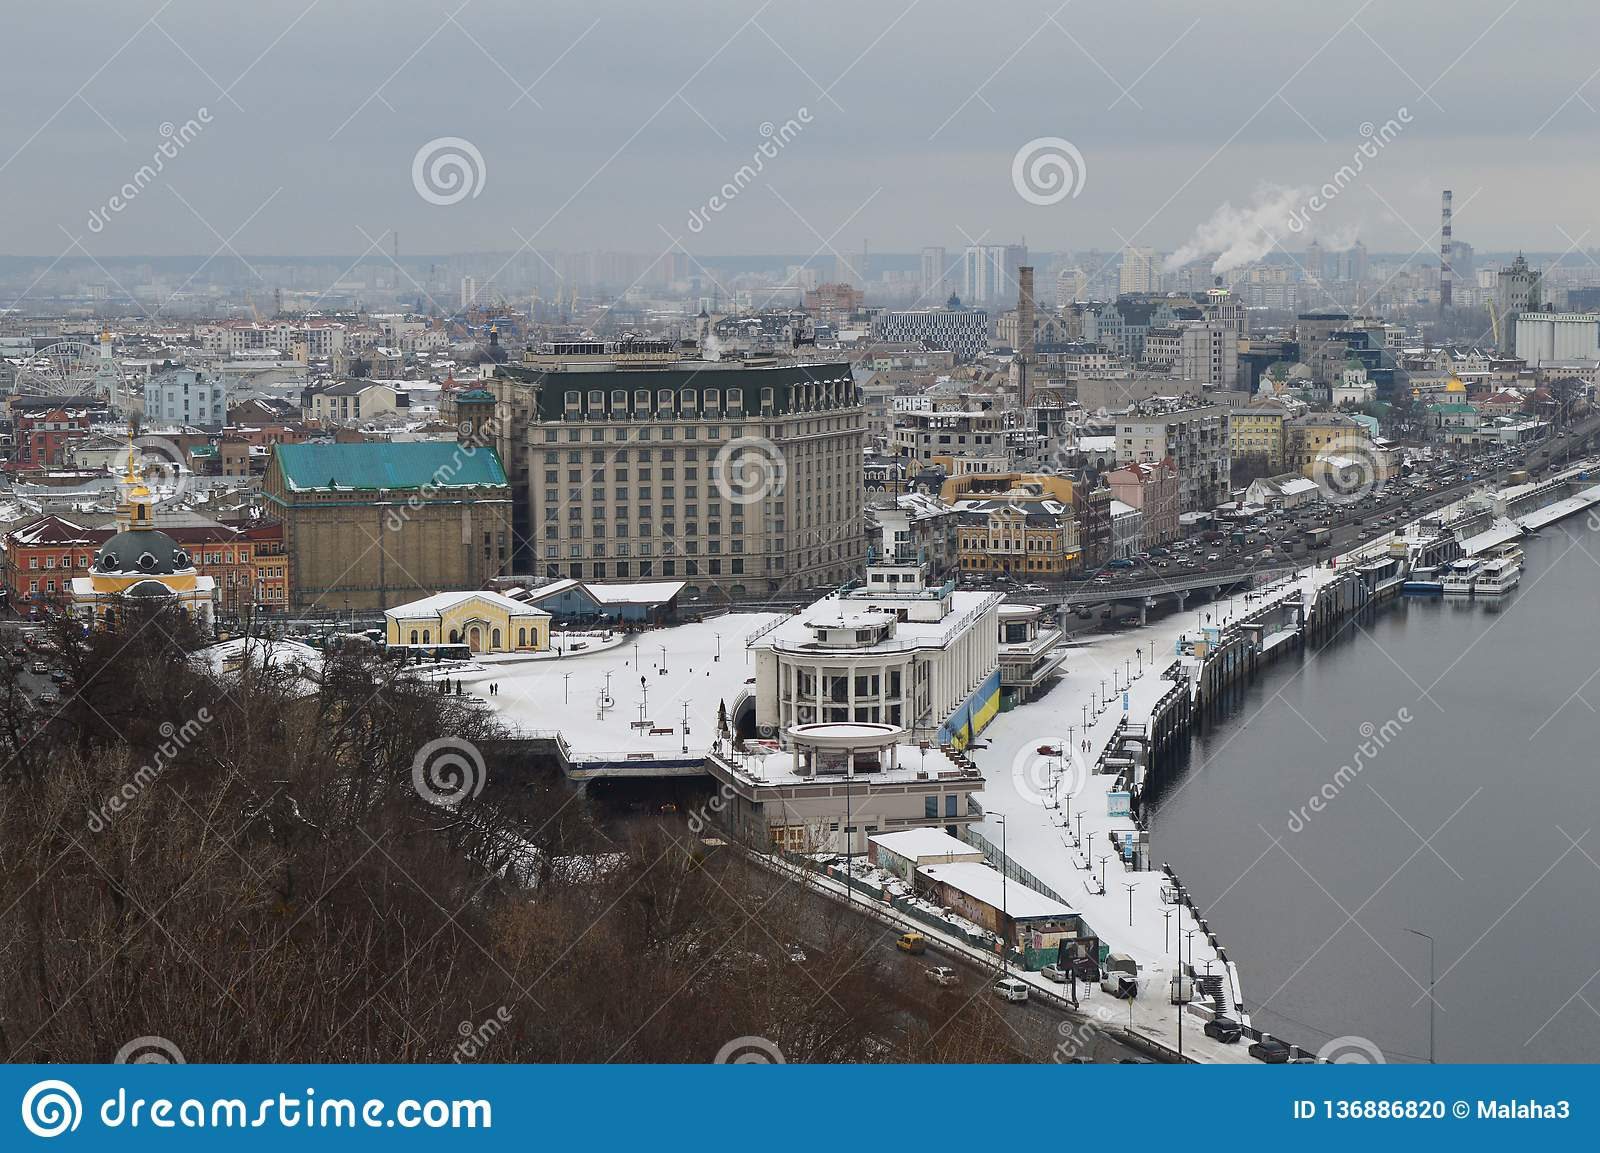 The Podol of Kiev in the winter from a height